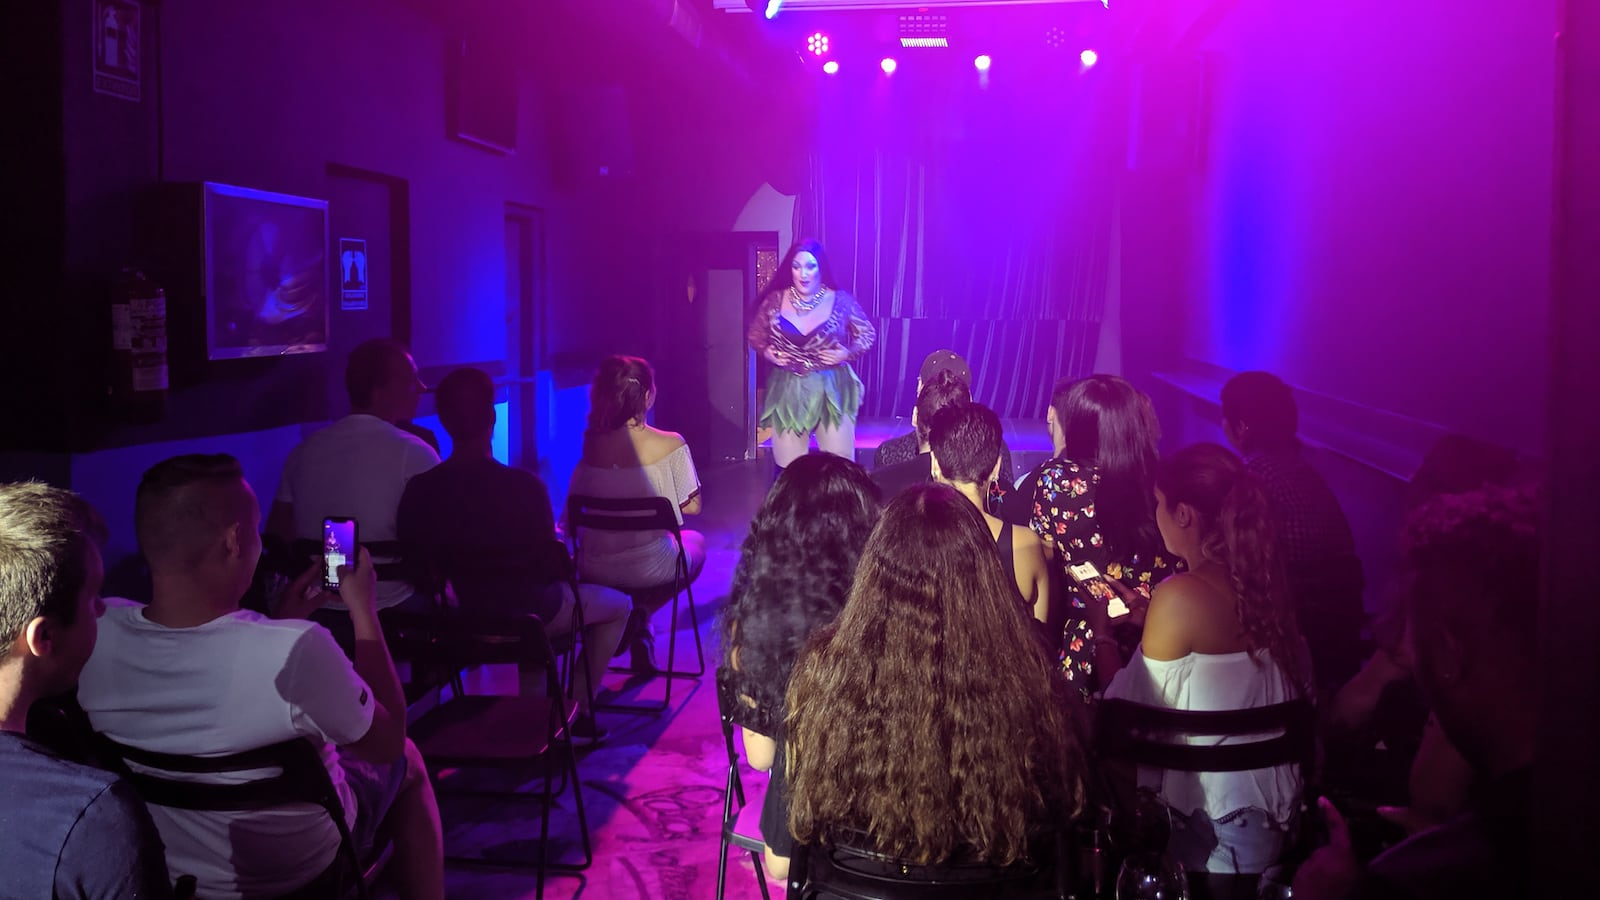 Believe gay bar Barcelona best for drag shows